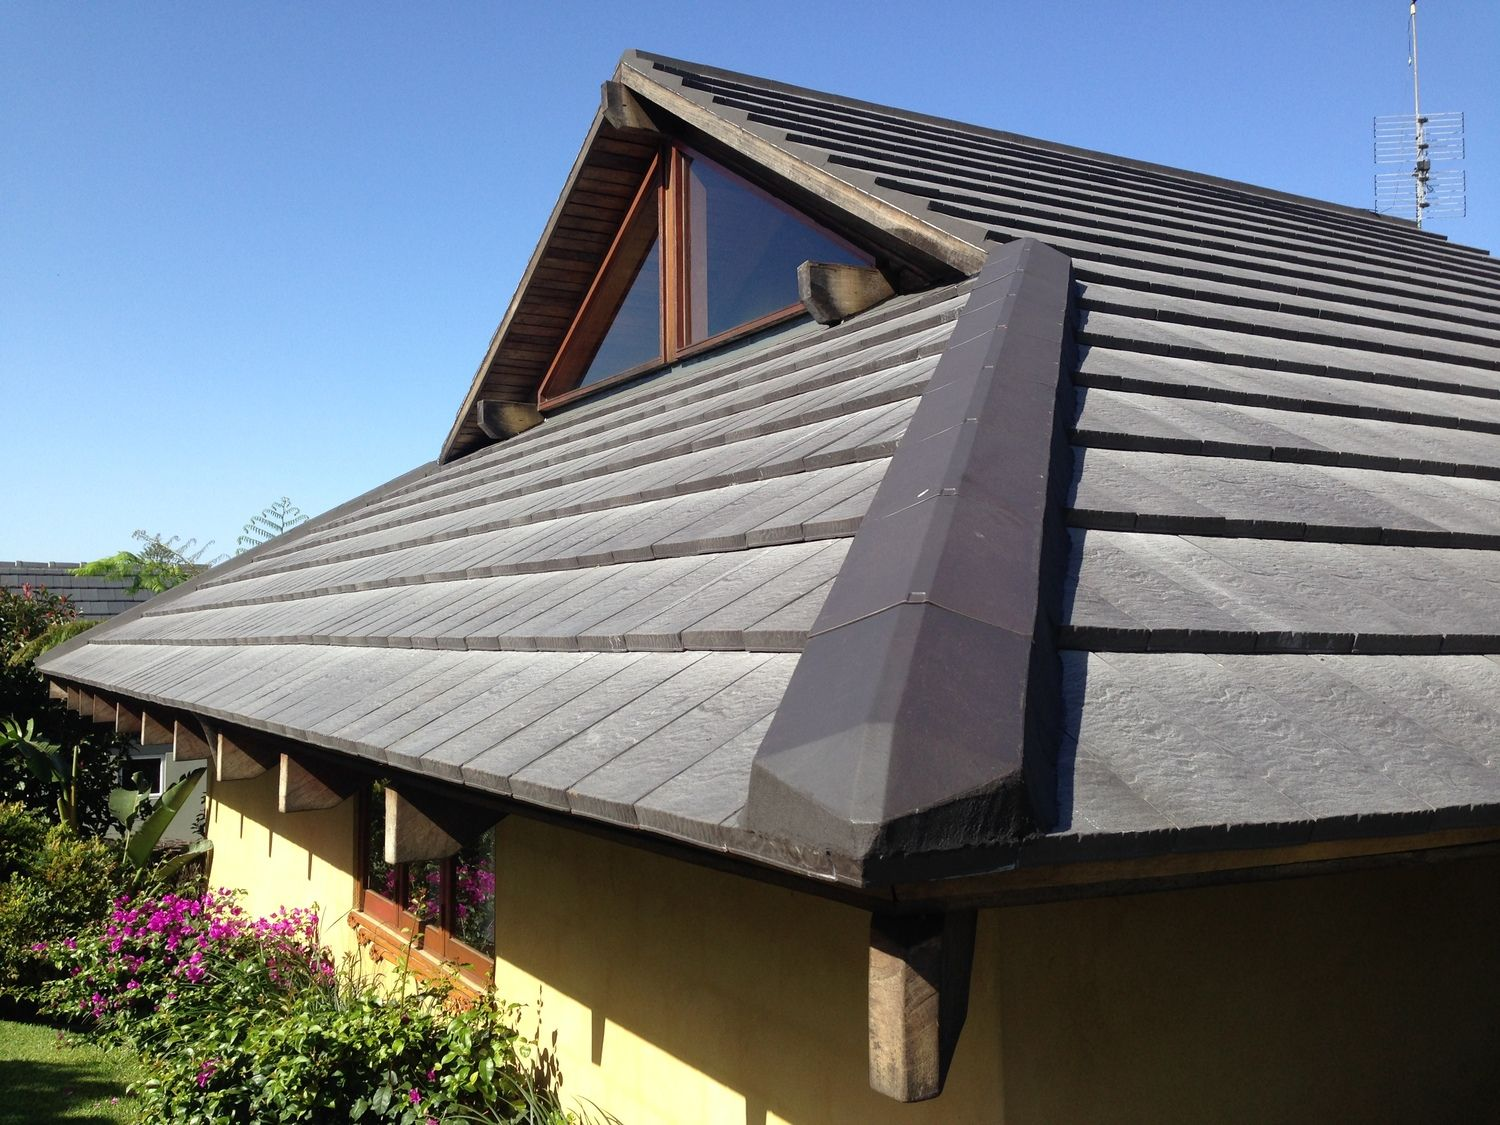 Slate Roof Tiles Installed And That Is The Ridge Cing Very Detailed Nicely Done